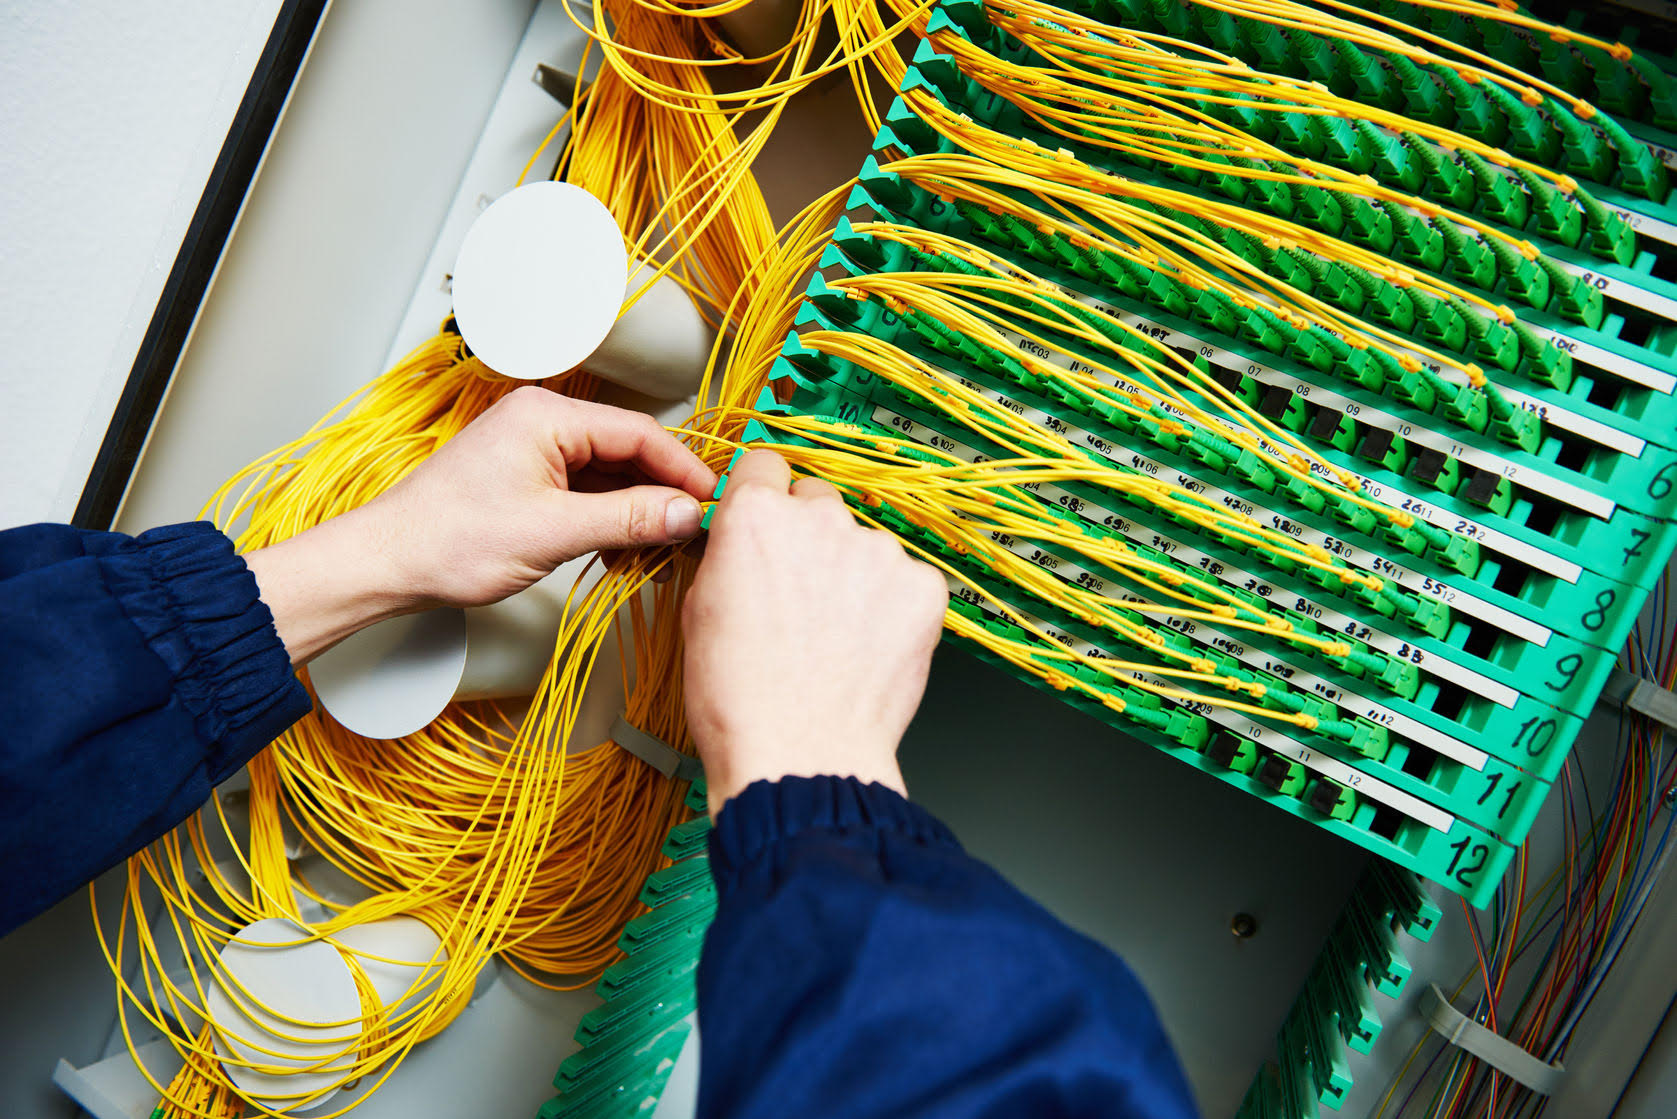 65564819 - internet connection. technician engineer hands connecting fiber optic cables